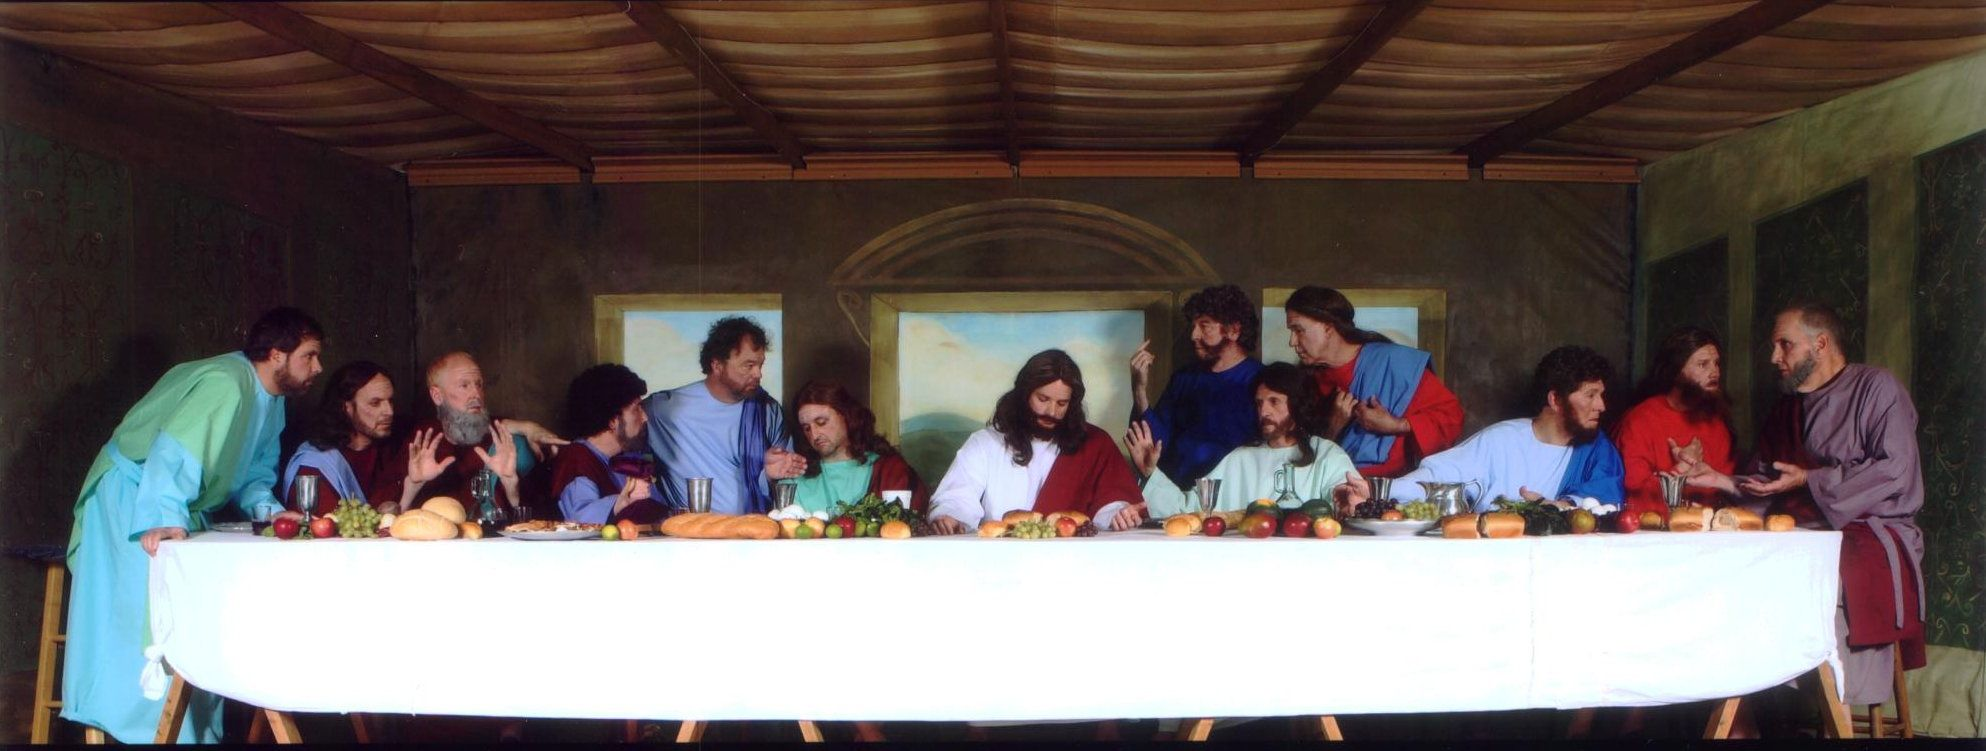 The Last Supper - Bible Story Verses & Meaning